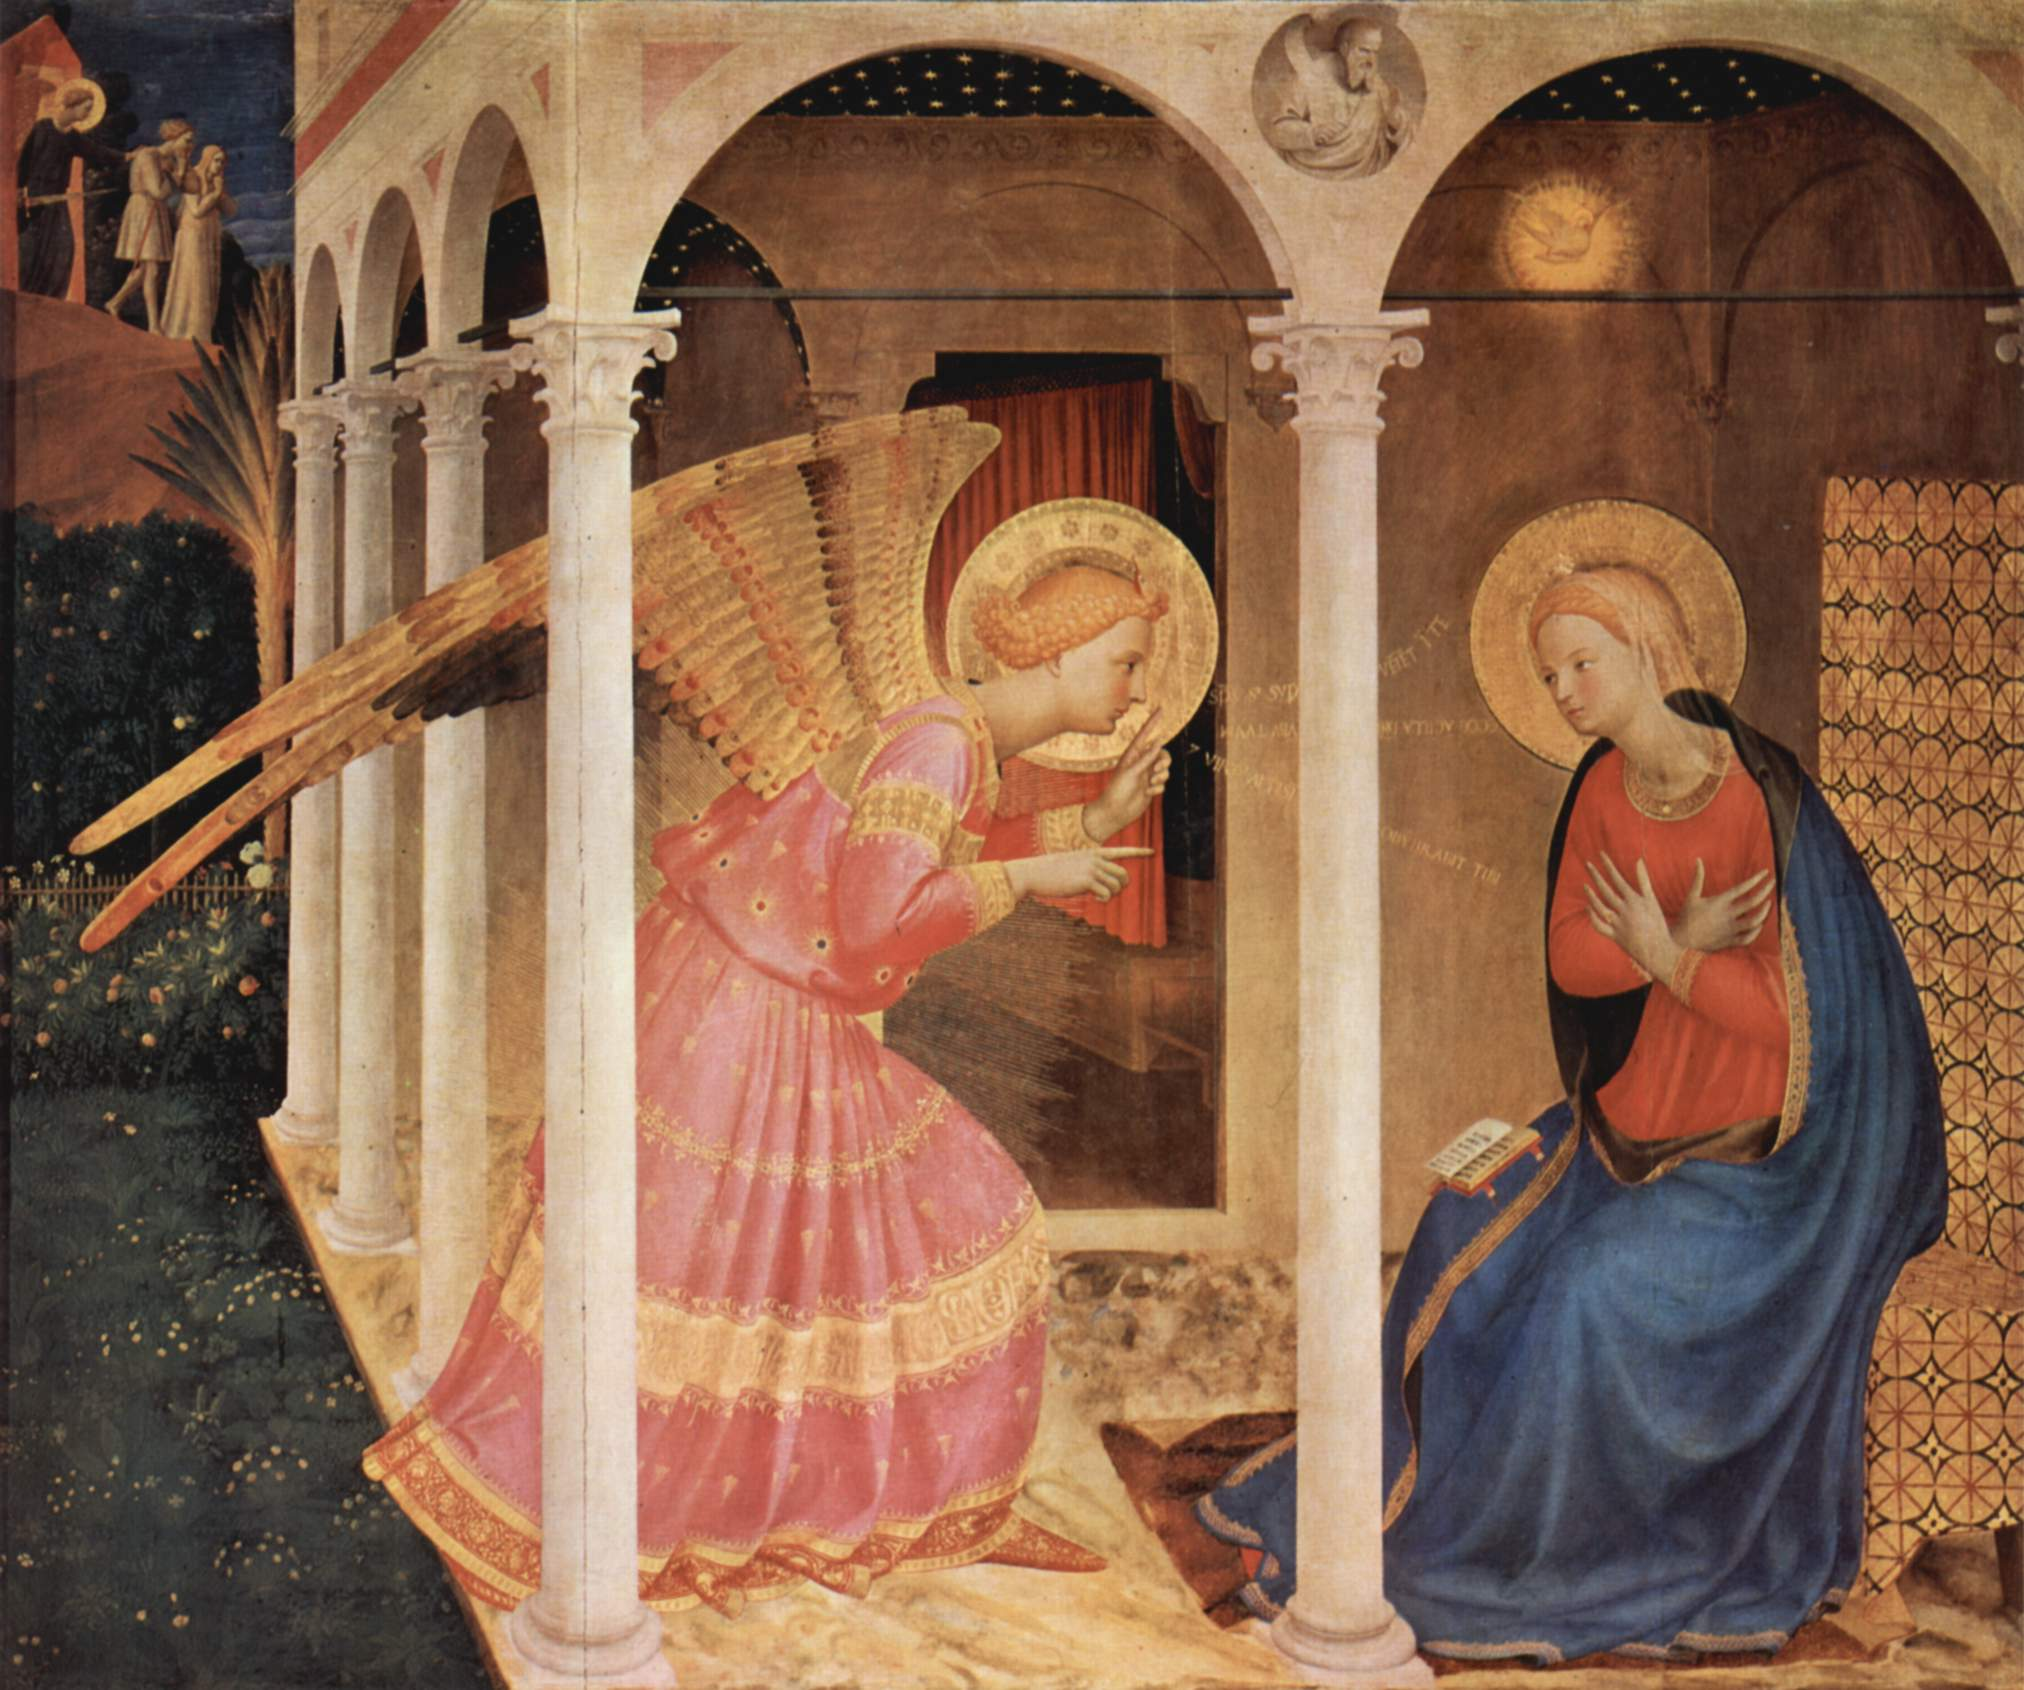 Feast of the Annunciation - March 25